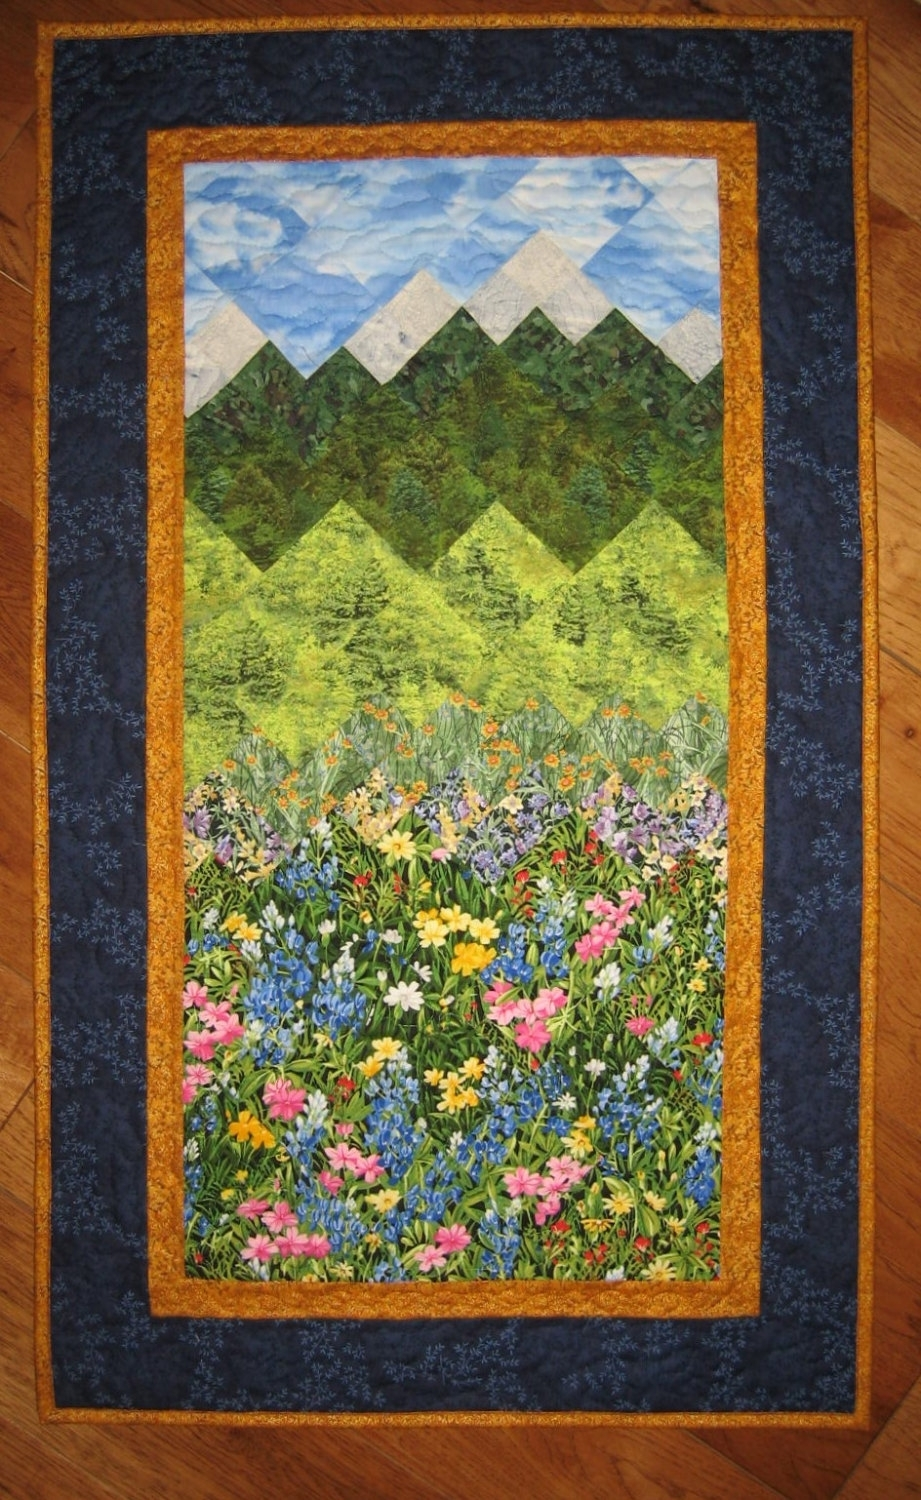 Summer Flowers And Mountains Art Quilt Fabric Wall Hanging Quilted Throughout Newest Fabric Wall Art Patterns (View 11 of 15)